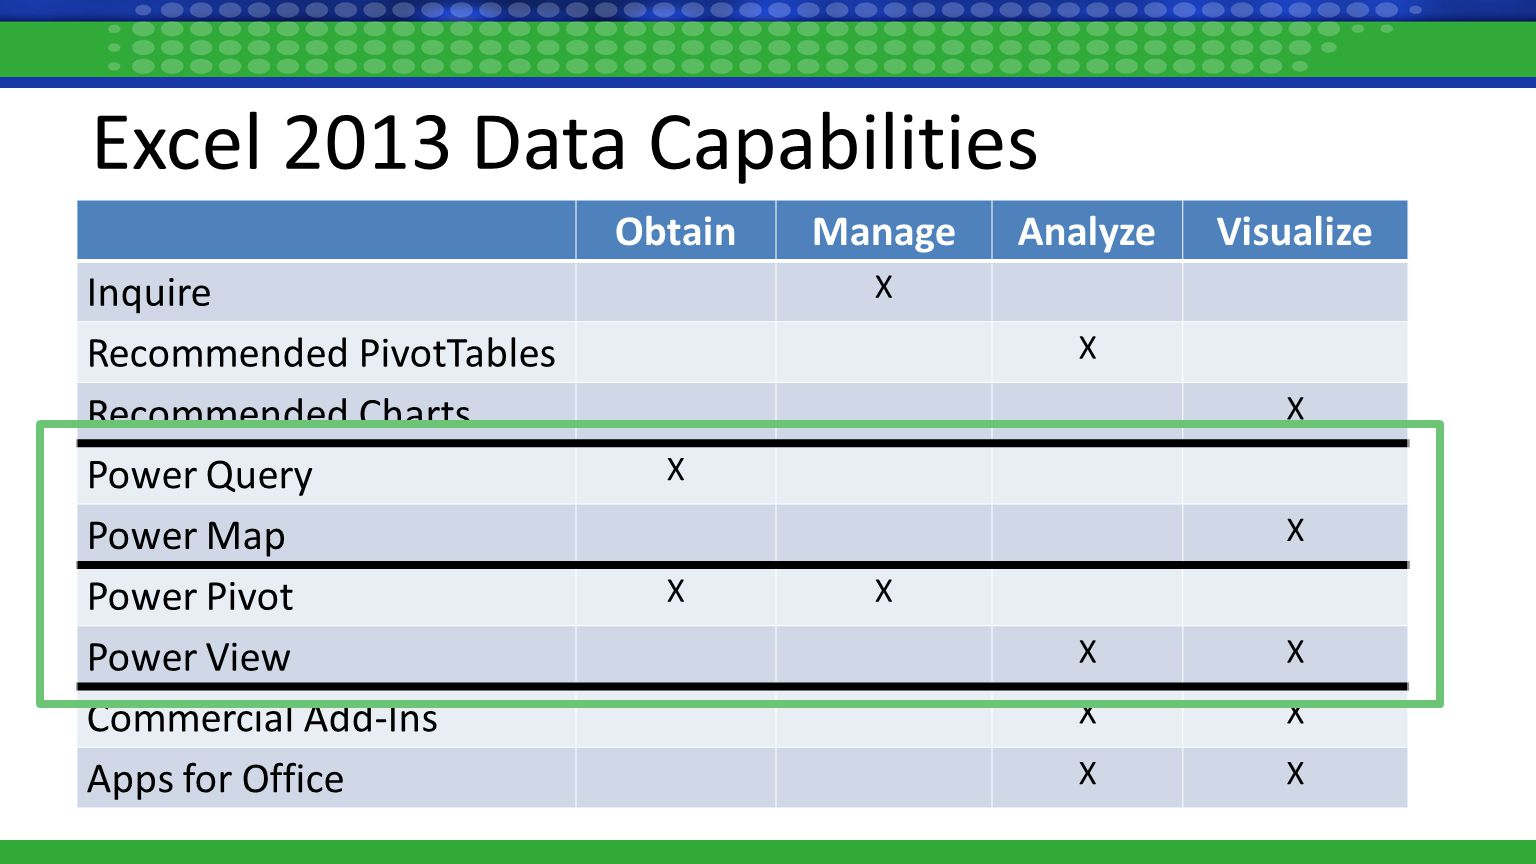 Excel 2013 Data Capabilities ObtainManageAnalyzeVisualize Inquire X Recommended PivotTables X Recommended Charts X ObtainManageAnalyzeVisualize Inquire X Recommended PivotTables X Recommended Charts X Power Query X Power Map X ObtainManageAnalyzeVisualize Inquire X Recommended PivotTables X Recommended Charts X Power Query X Power Map X Power Pivot XX Power View XX ObtainManageAnalyzeVisualize Inquire X Recommended PivotTables X Recommended Charts X Power Query X Power Map X Power Pivot XX Power View XX Commercial Add-Ins XX Apps for Office XX